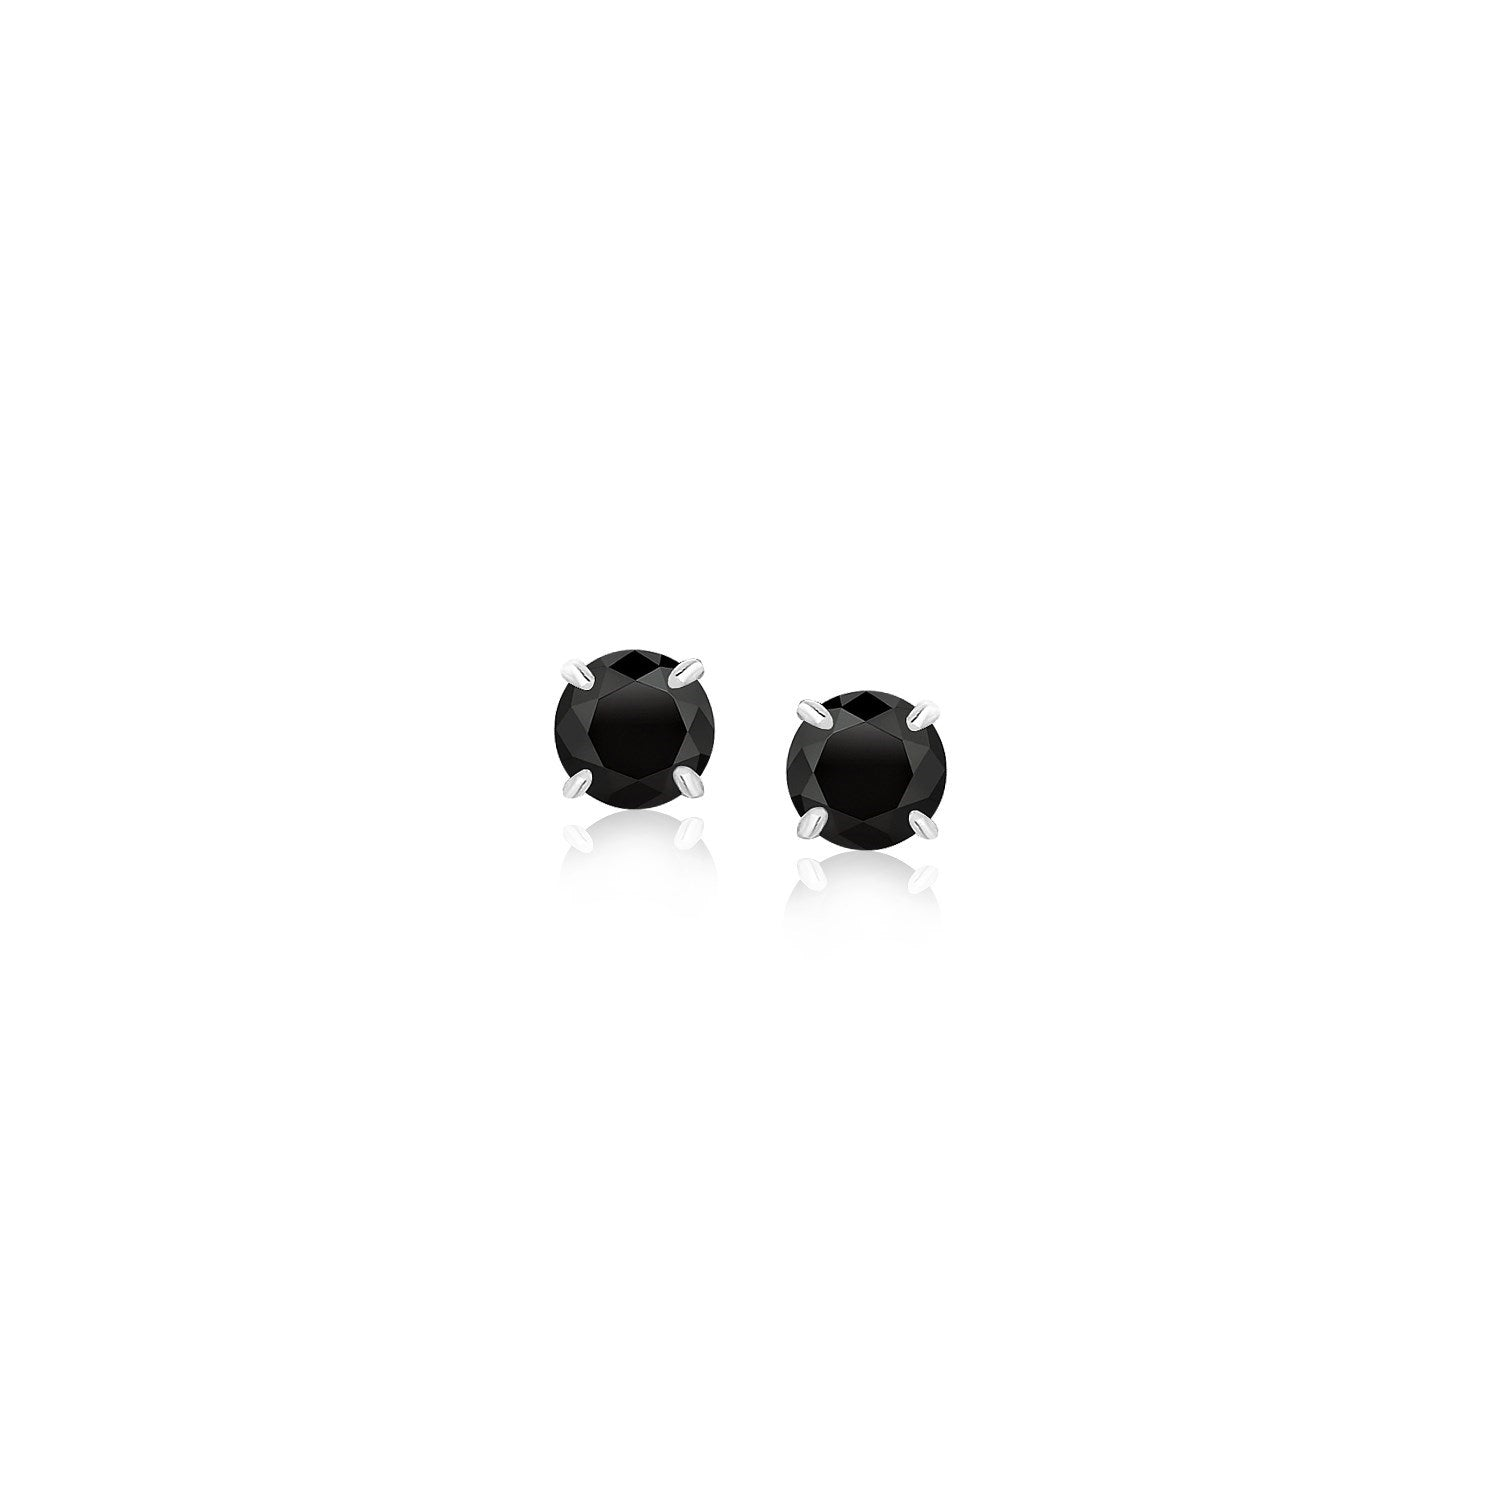 Unique Modern Paris Style Sterling Silver Stud Earrings with Black 4mm Cubic Zirconia